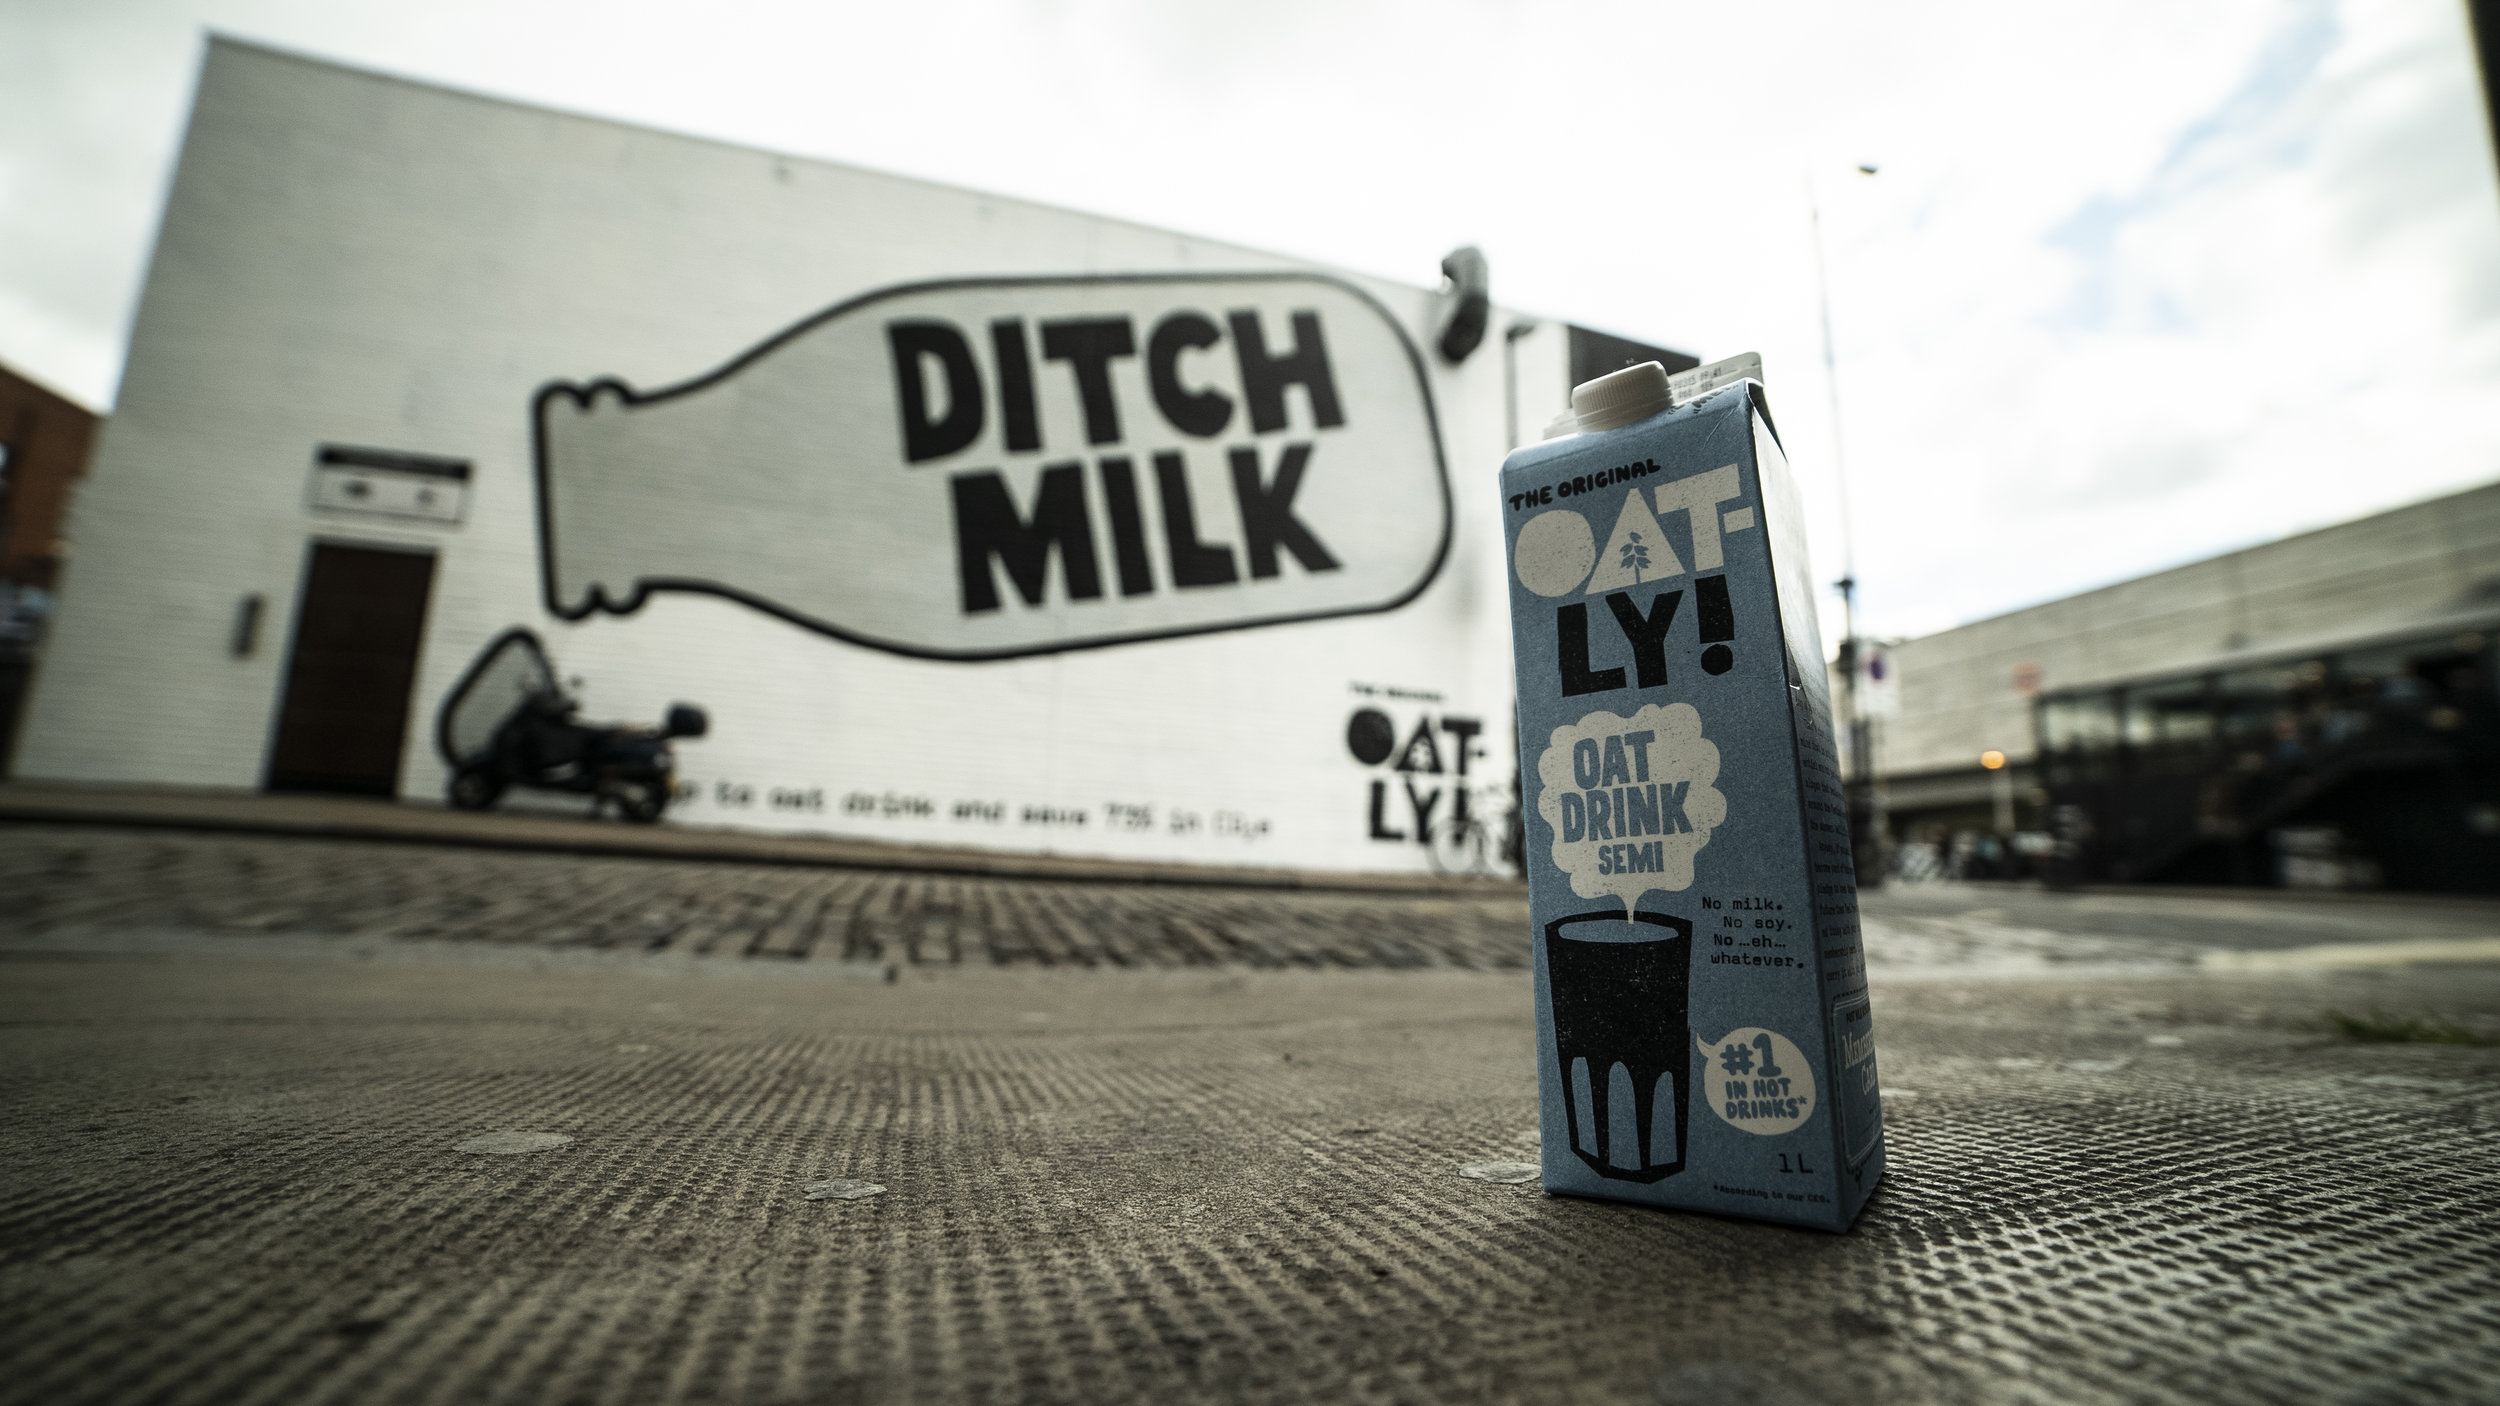 Oatly, Ebor Street (product placement) #2.jpg